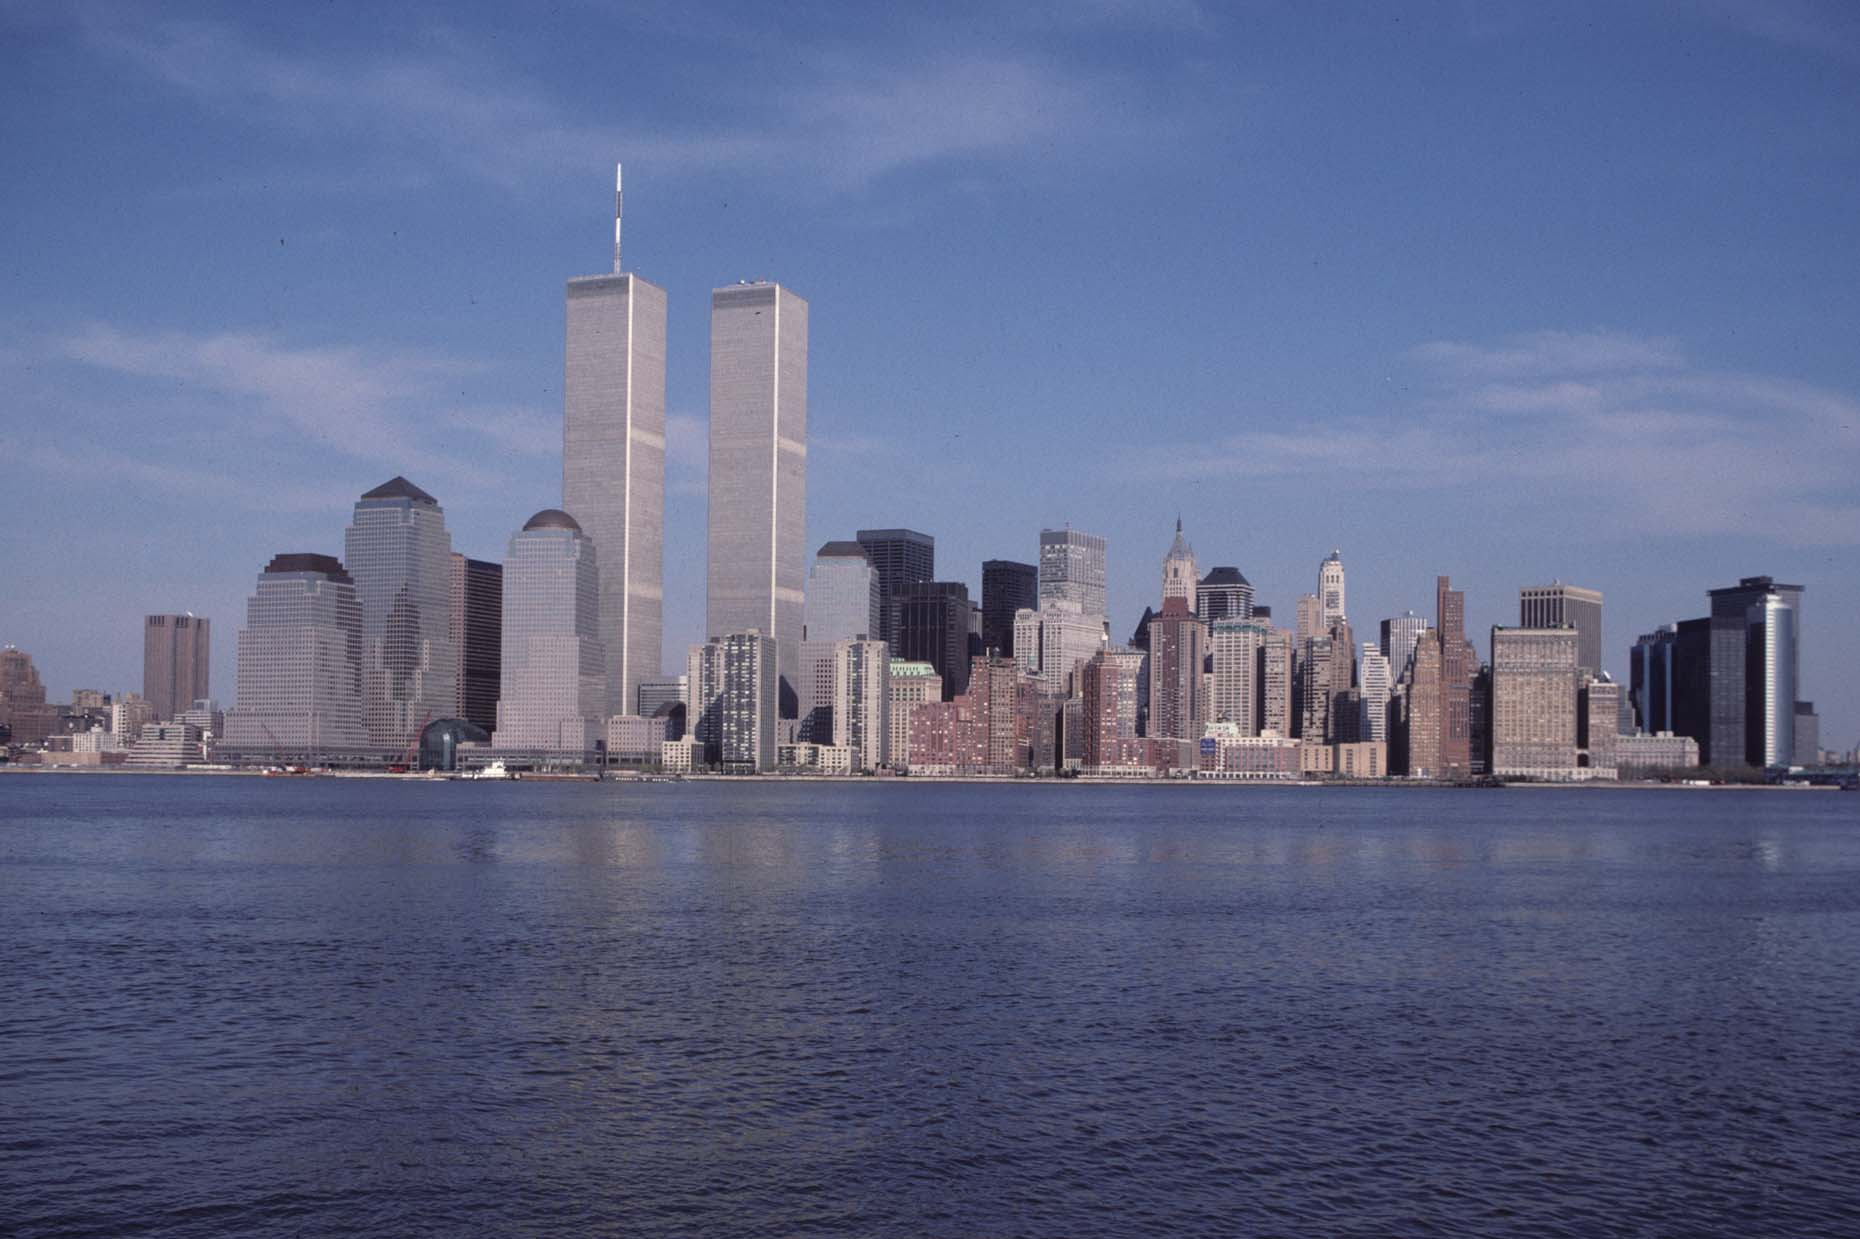 07_View of the WTC from Exchange Place, Jersey City, 1989_-DUP.jpg